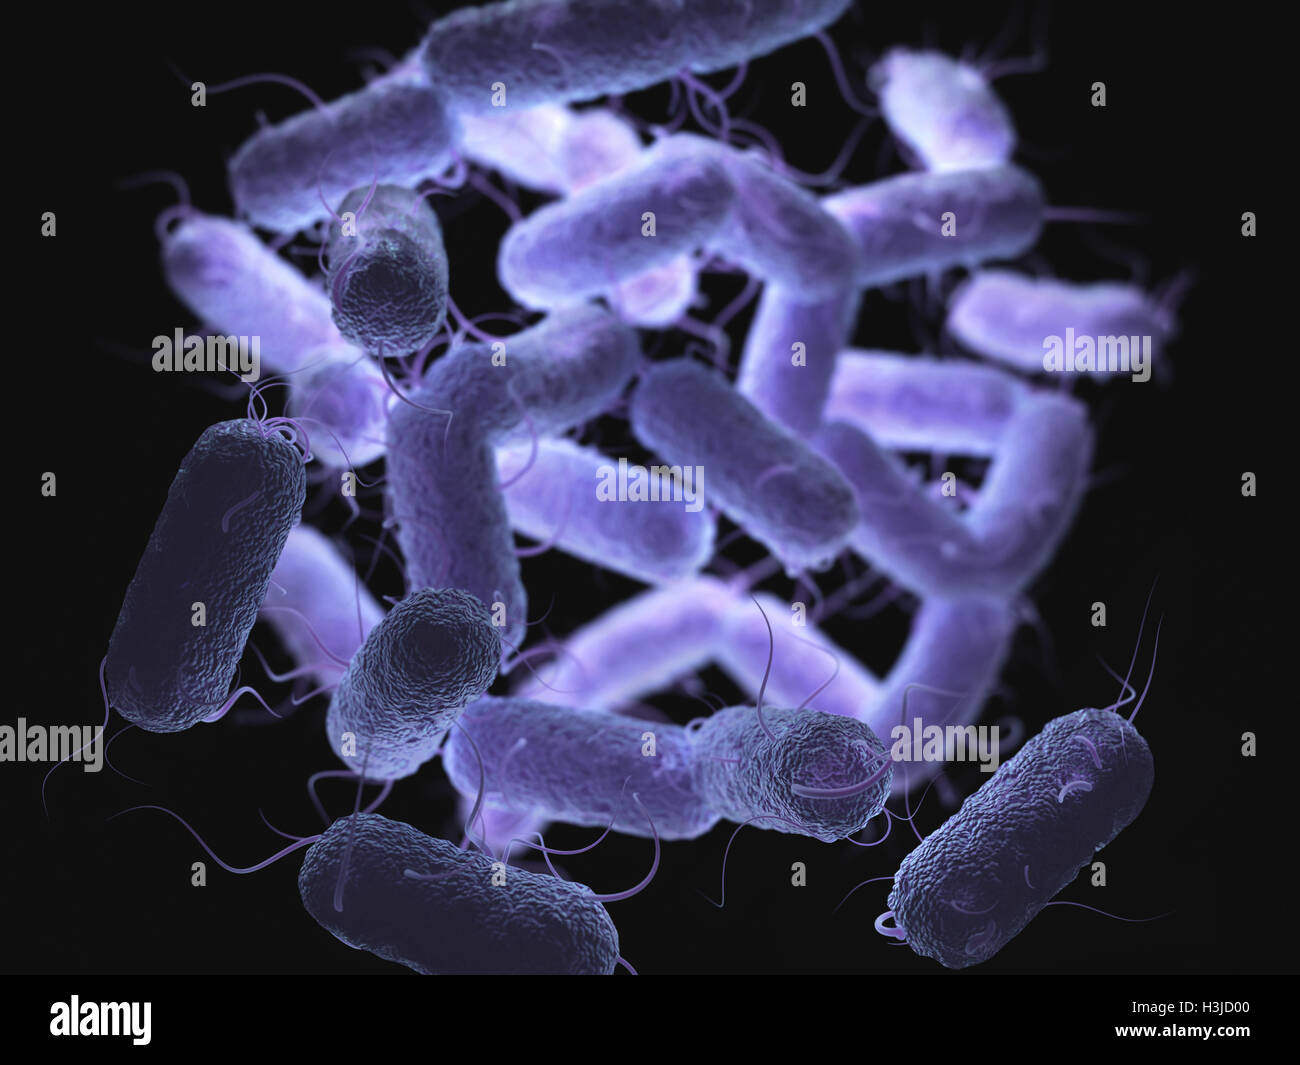 Enterobacteriaceae: large family of Gram-negative bacteria that includes many of the more familiar pathogens. - Stock Image